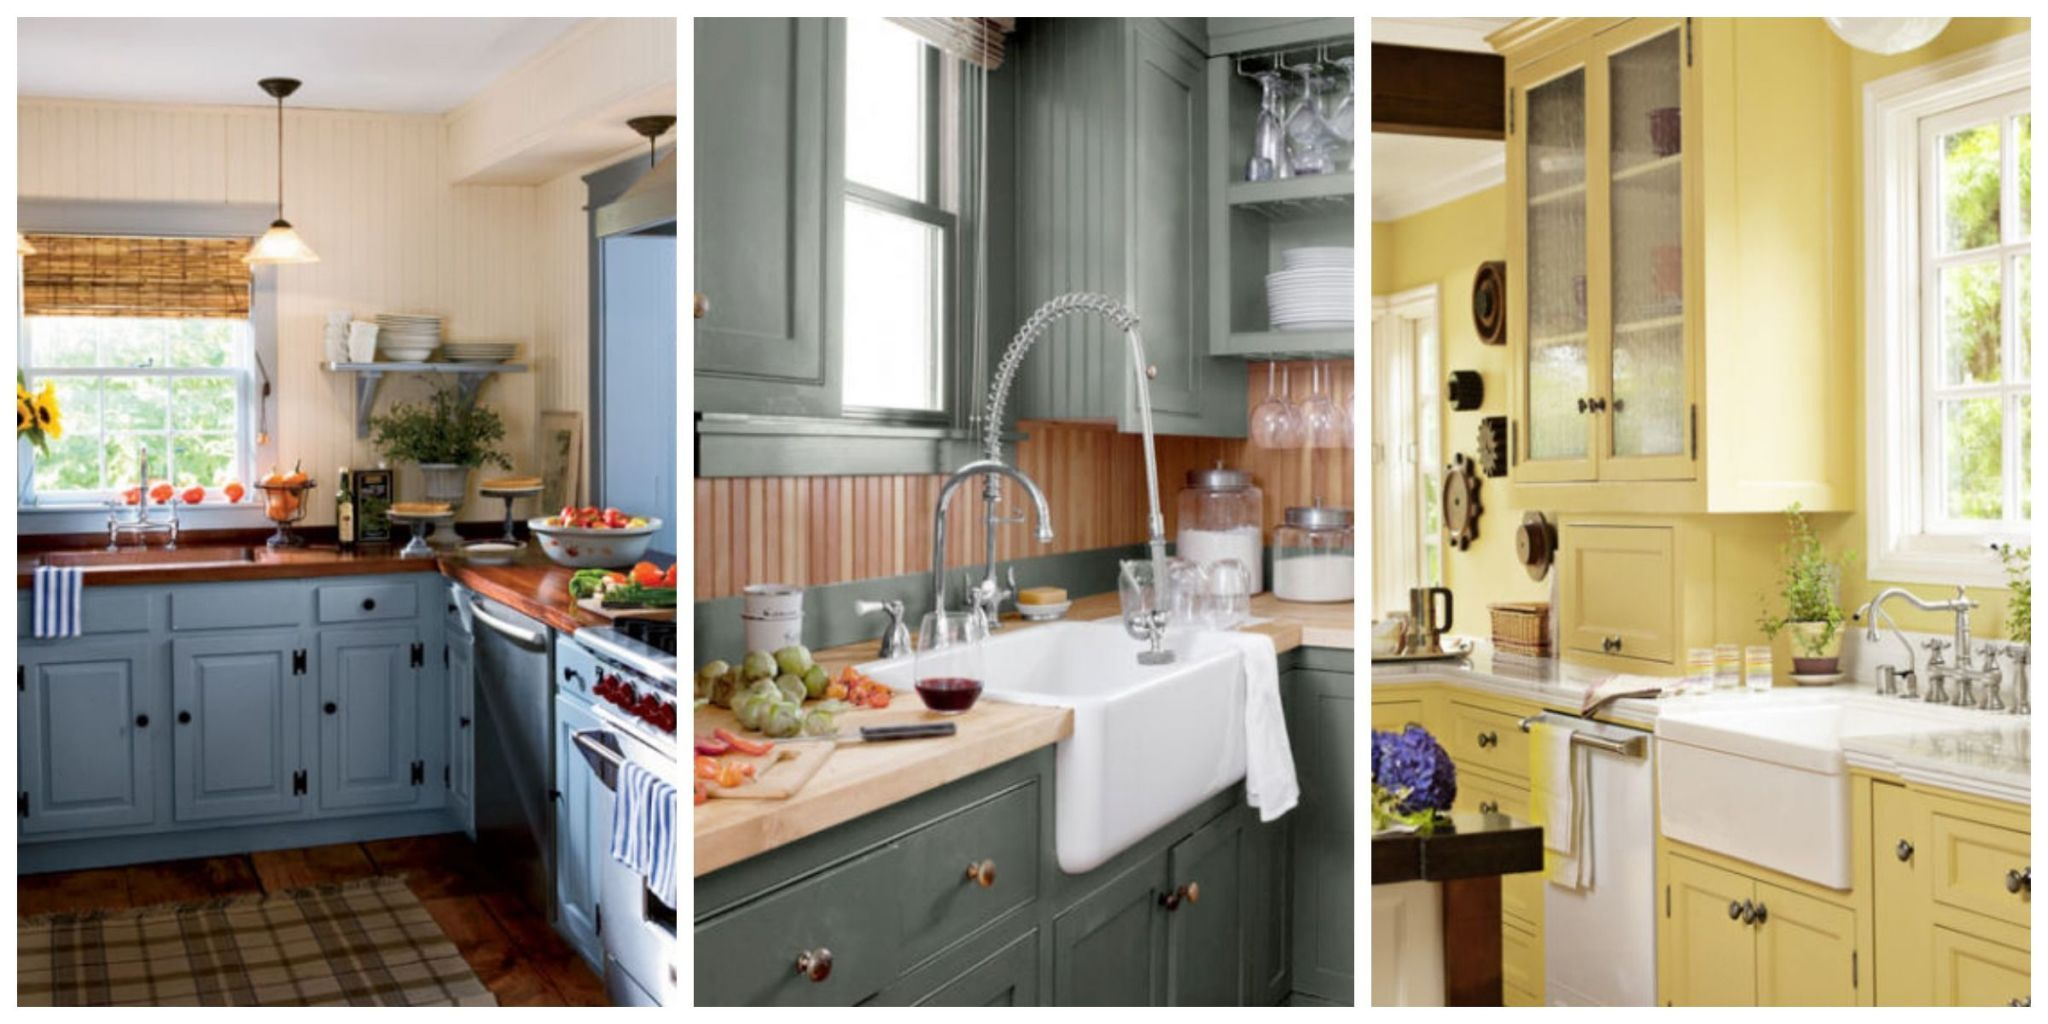 Beau Create A Beautiful And Colorful Kitchen With These Paint And Decorating  Ideas.